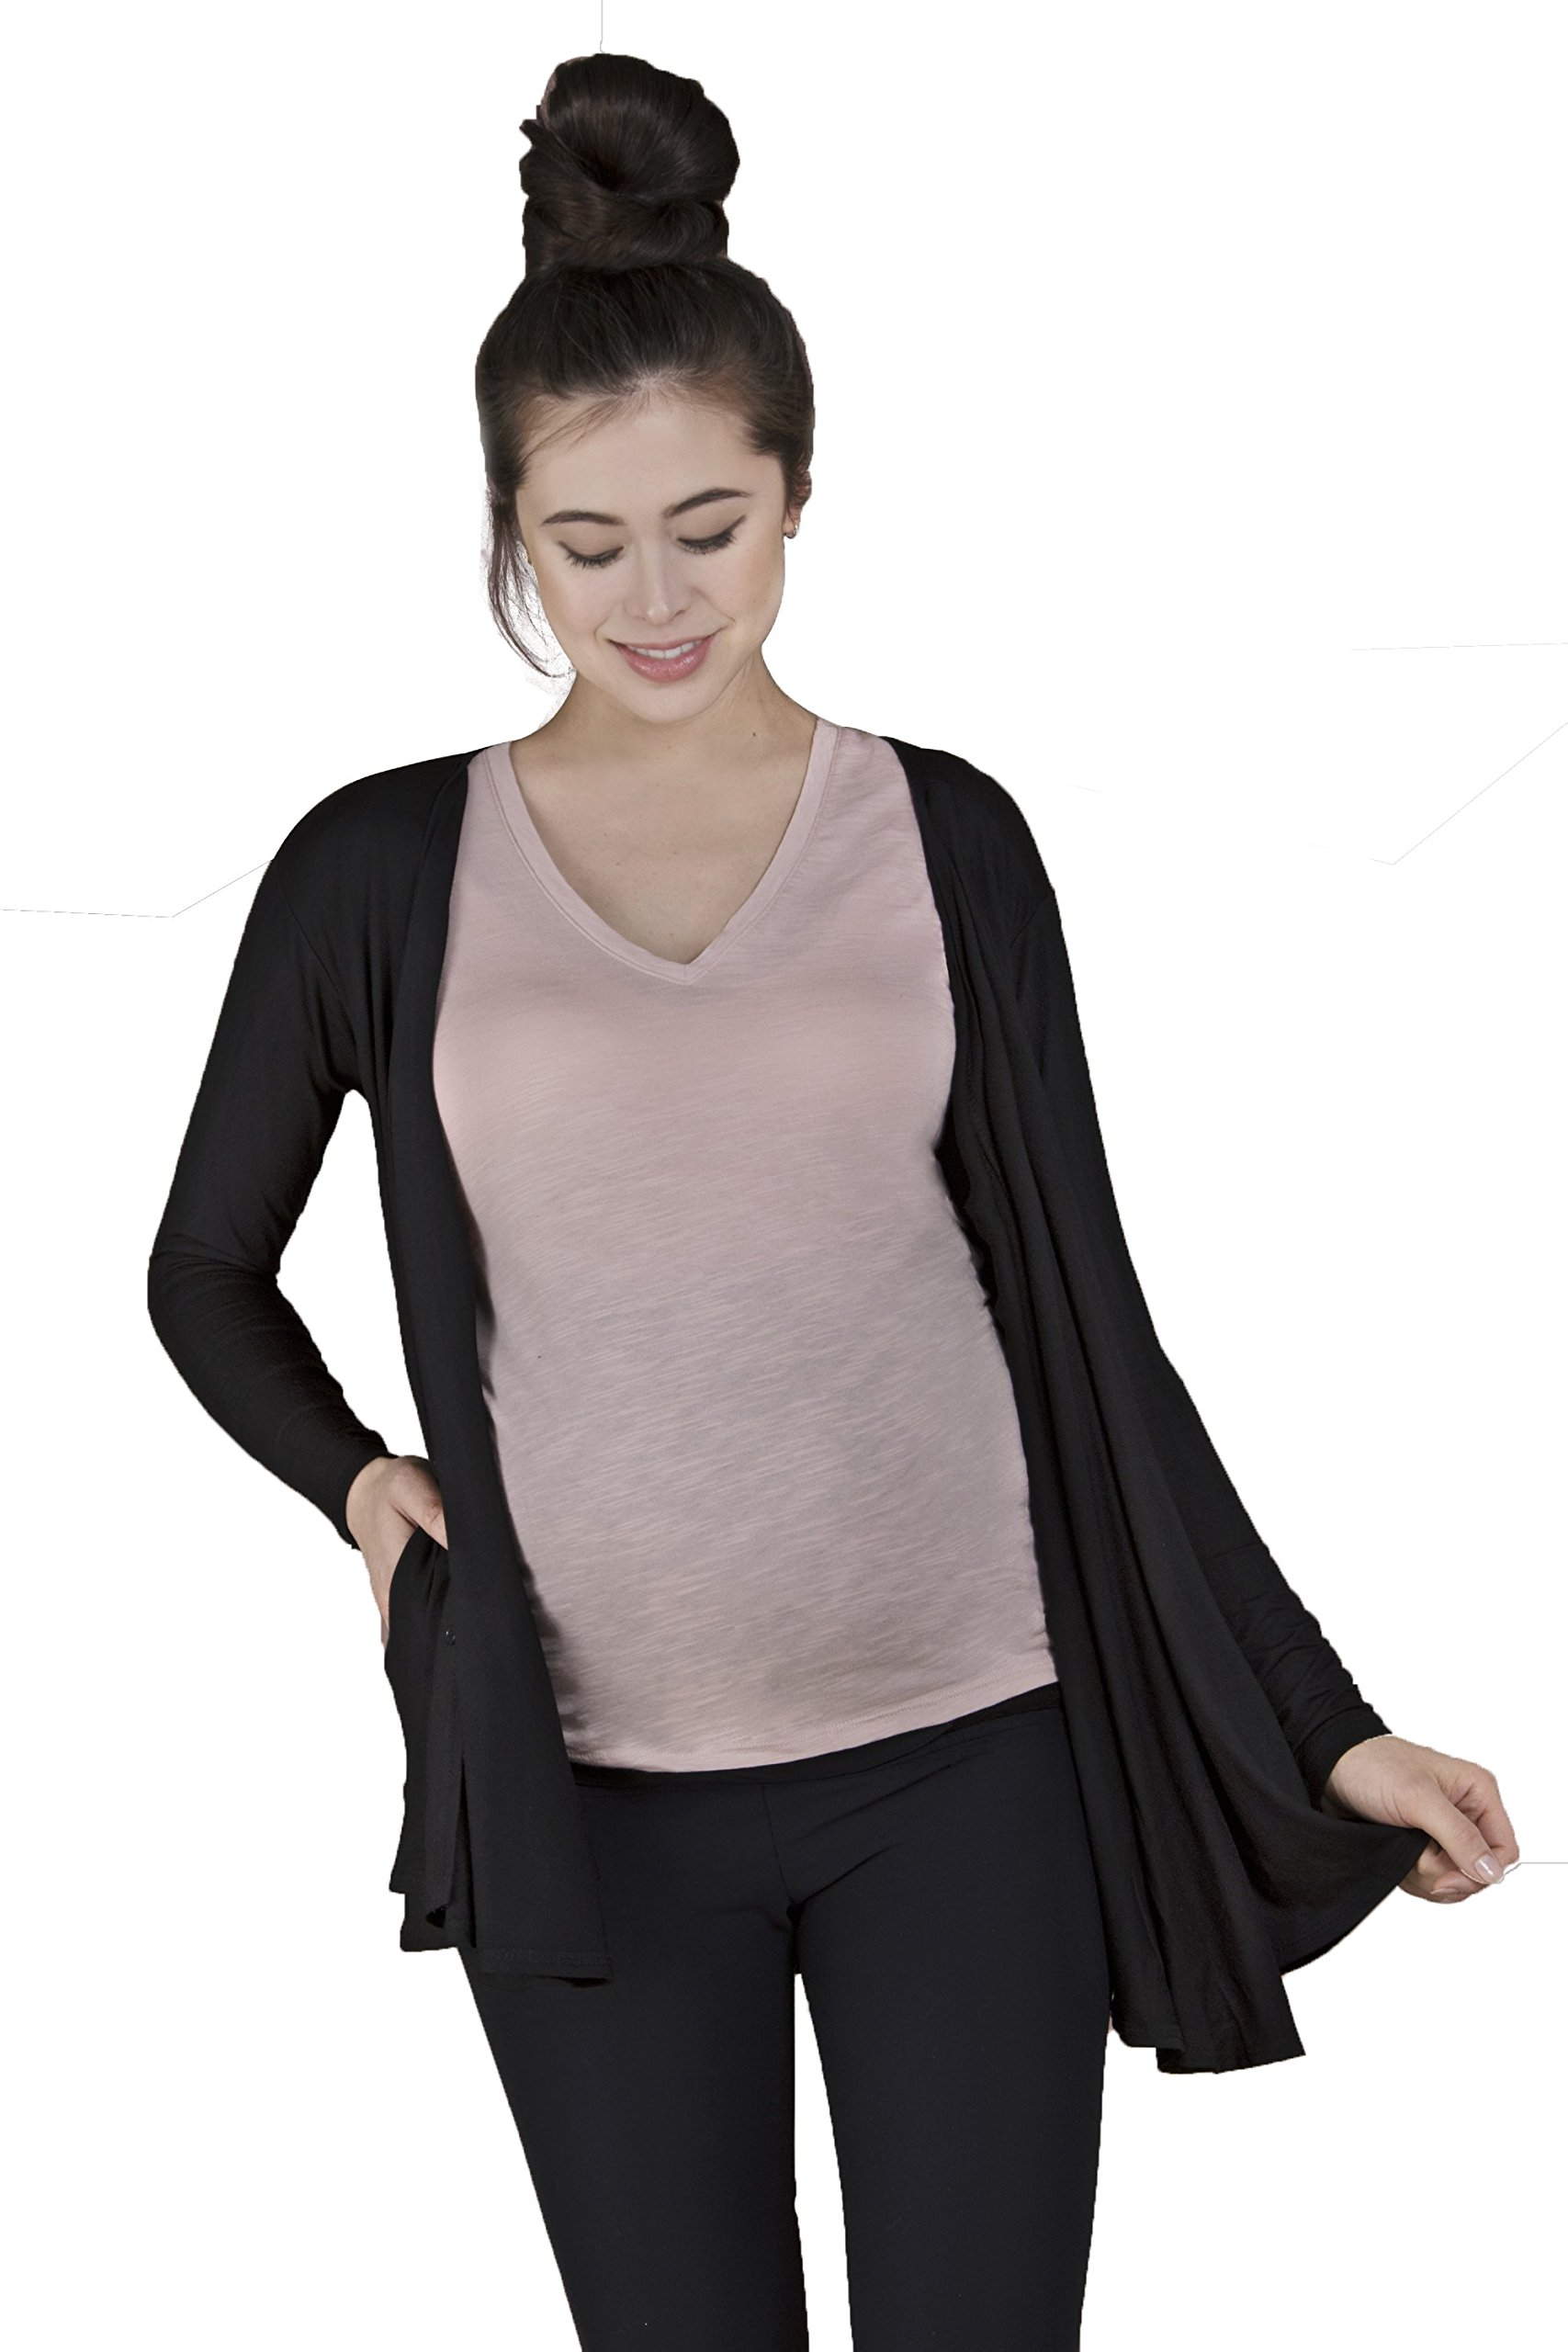 Two-in-one Nursing Cover and Cardigan for Maternity, Breastfeeding and Pumping by goodbody goodmommy Black